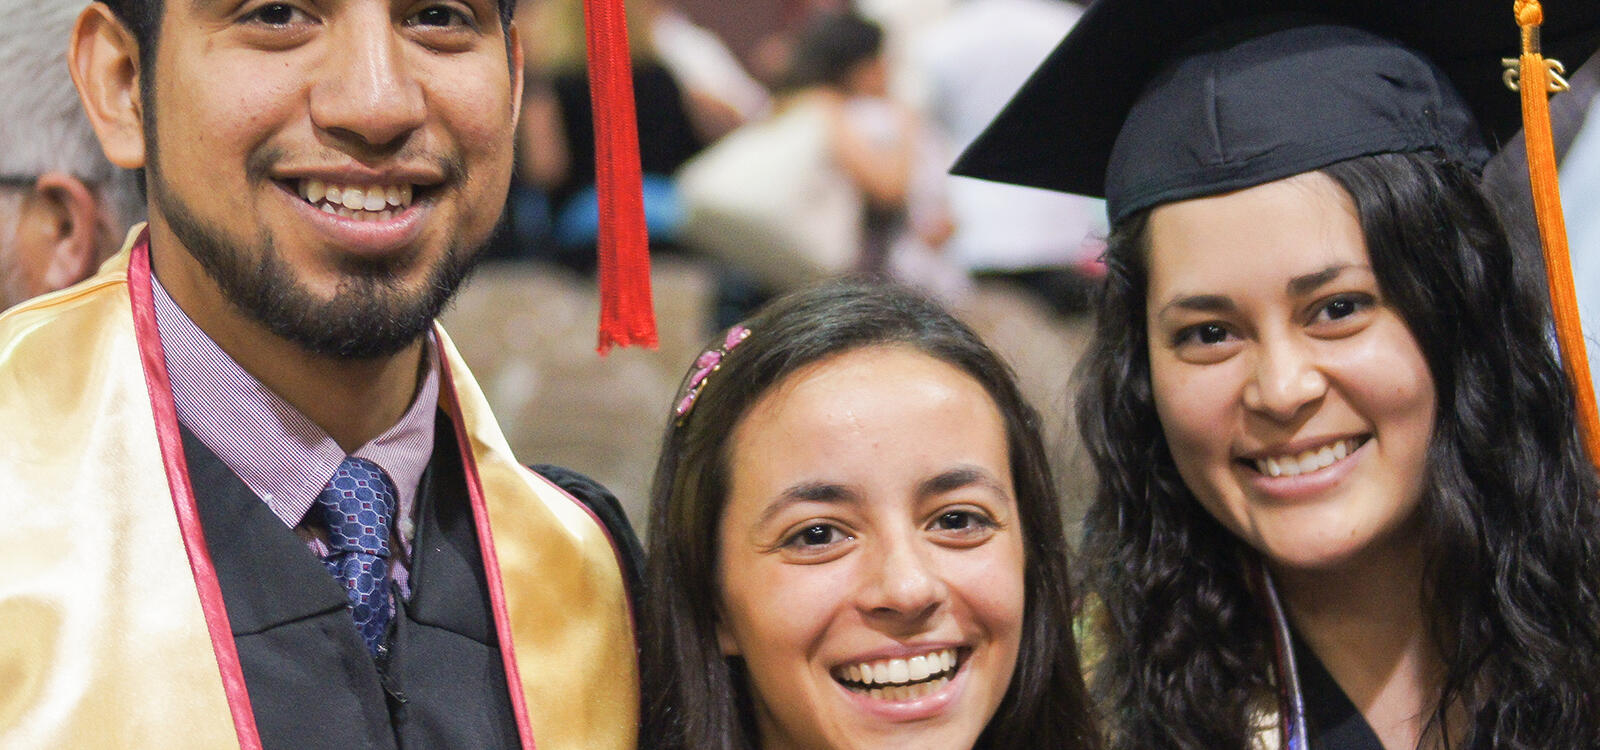 Two graduating students smiling with their peer